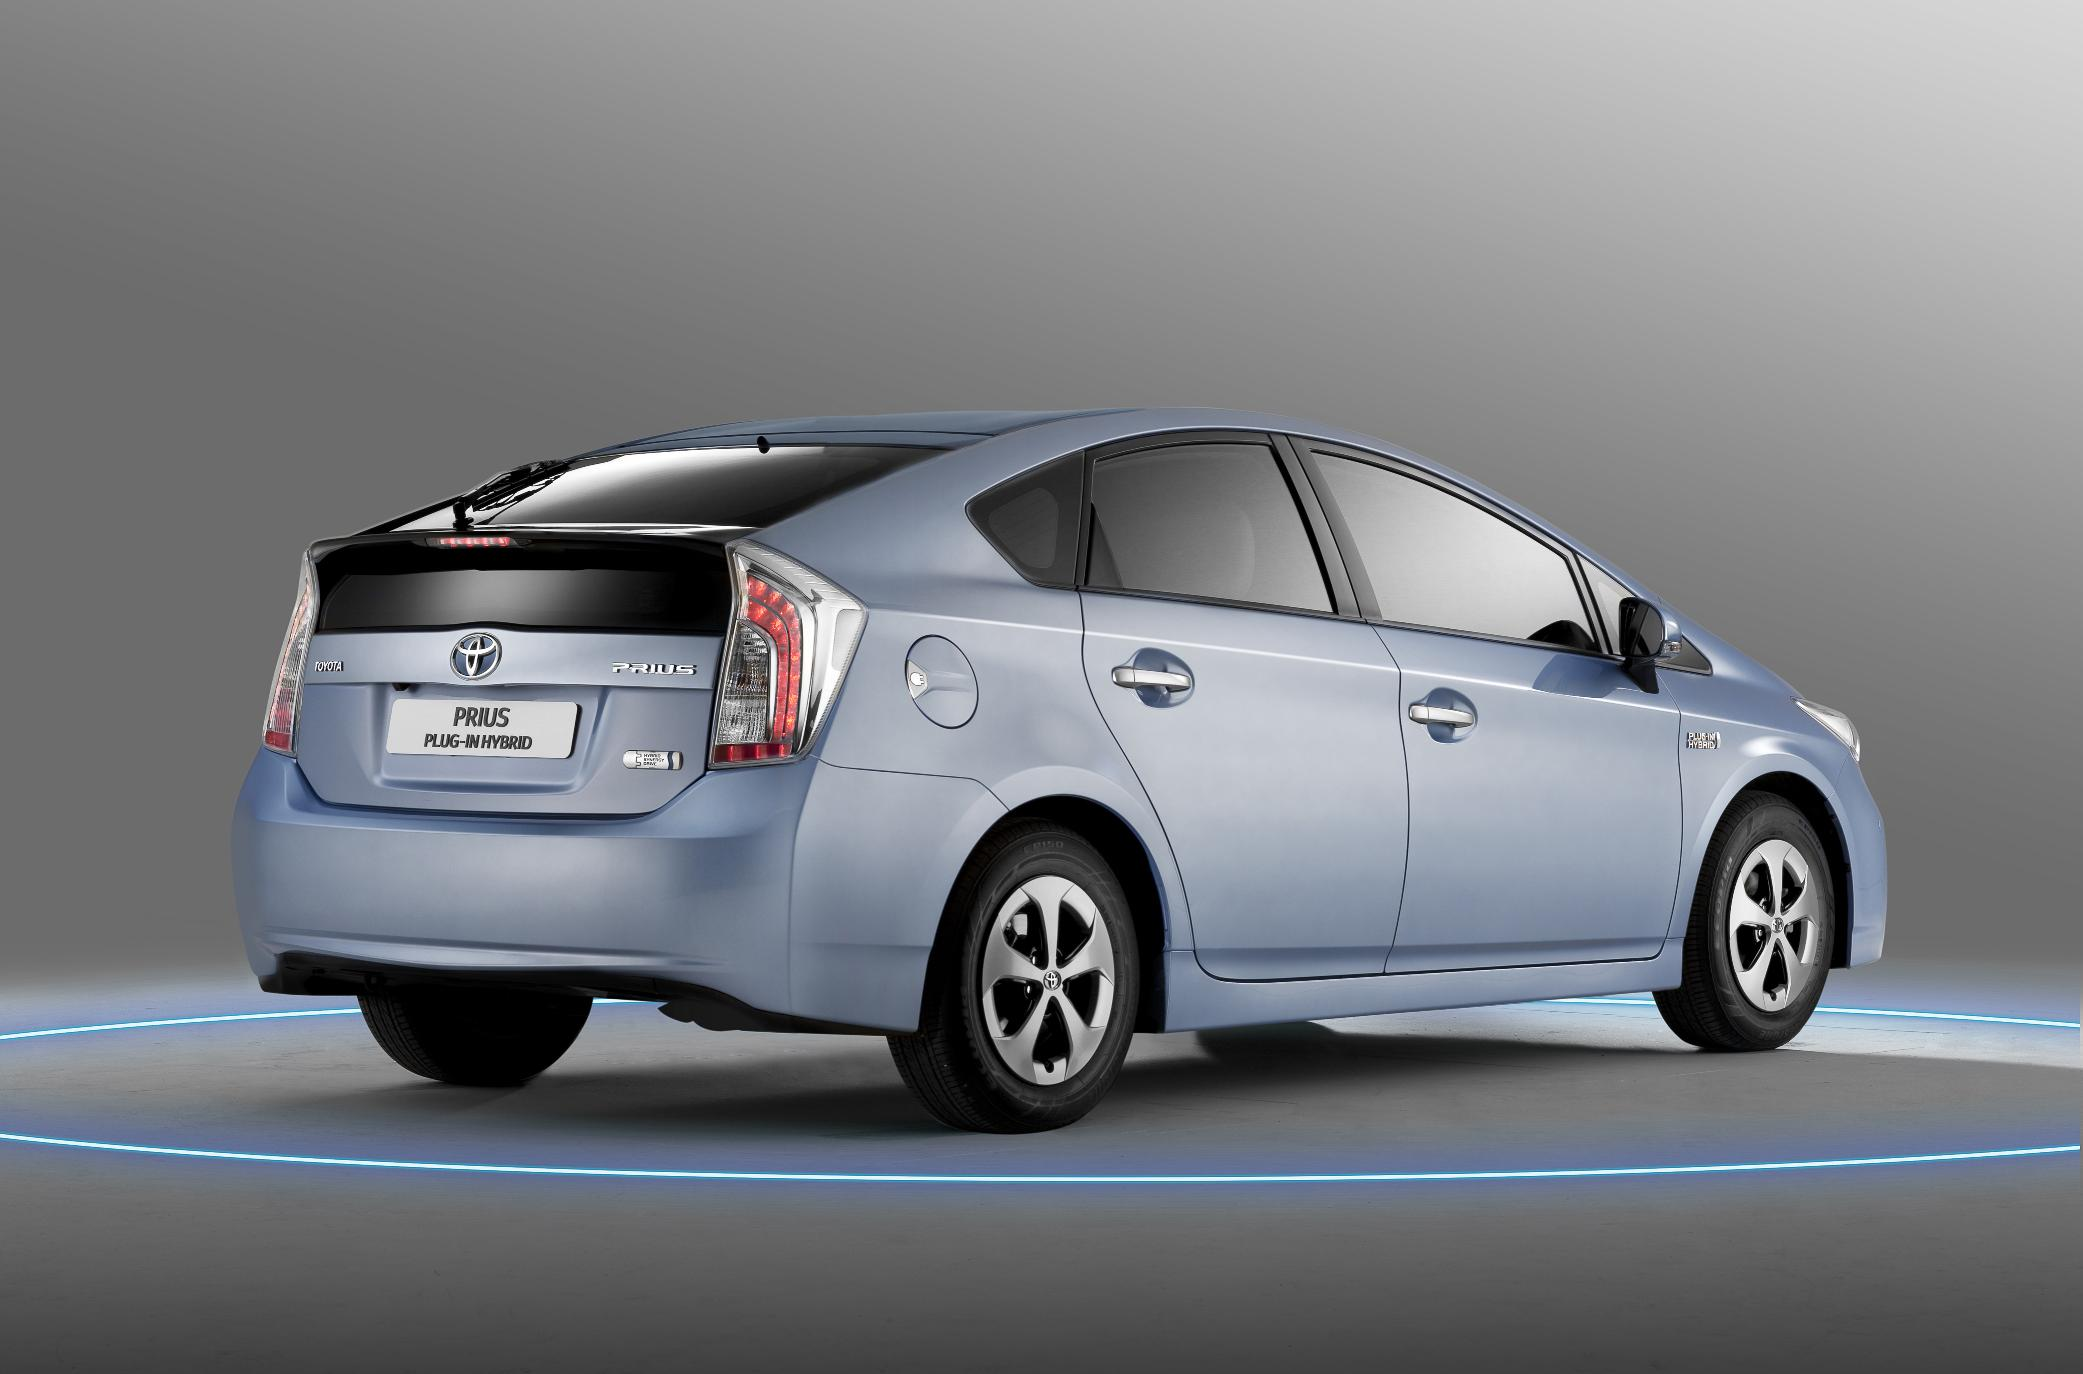 Prius Key Battery >> 2012 Toyota Prius Plug-In Hybrid with the lowest CO2 emissions on the market